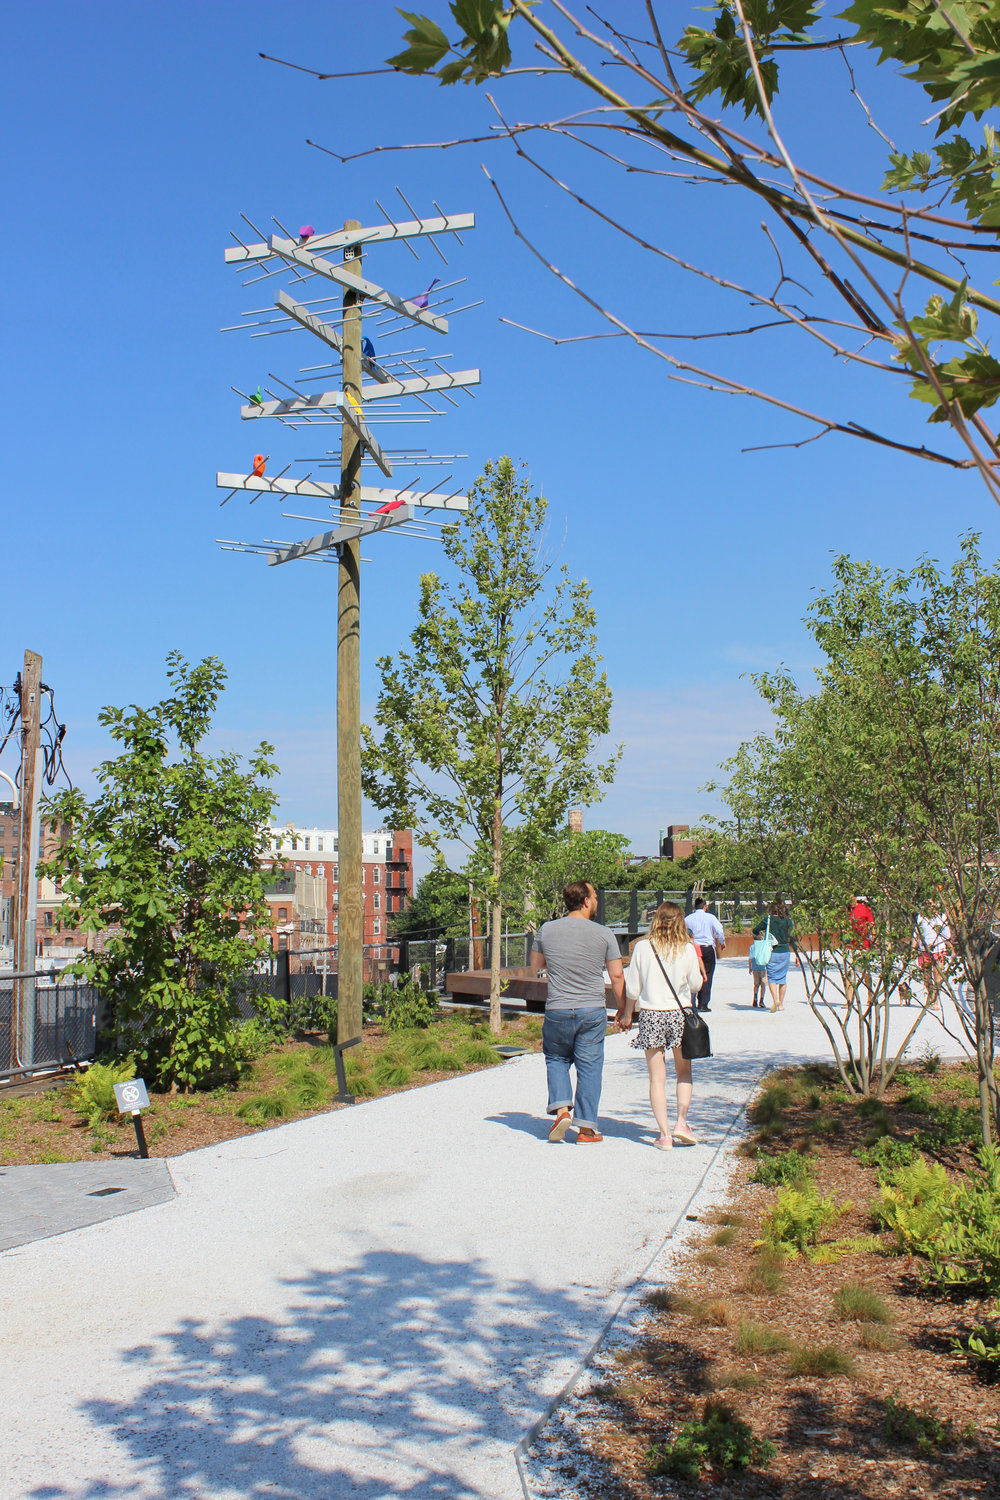 rail-park-bird-perch.jpgWalking the New Rail Park in Philly - wear she blossoms